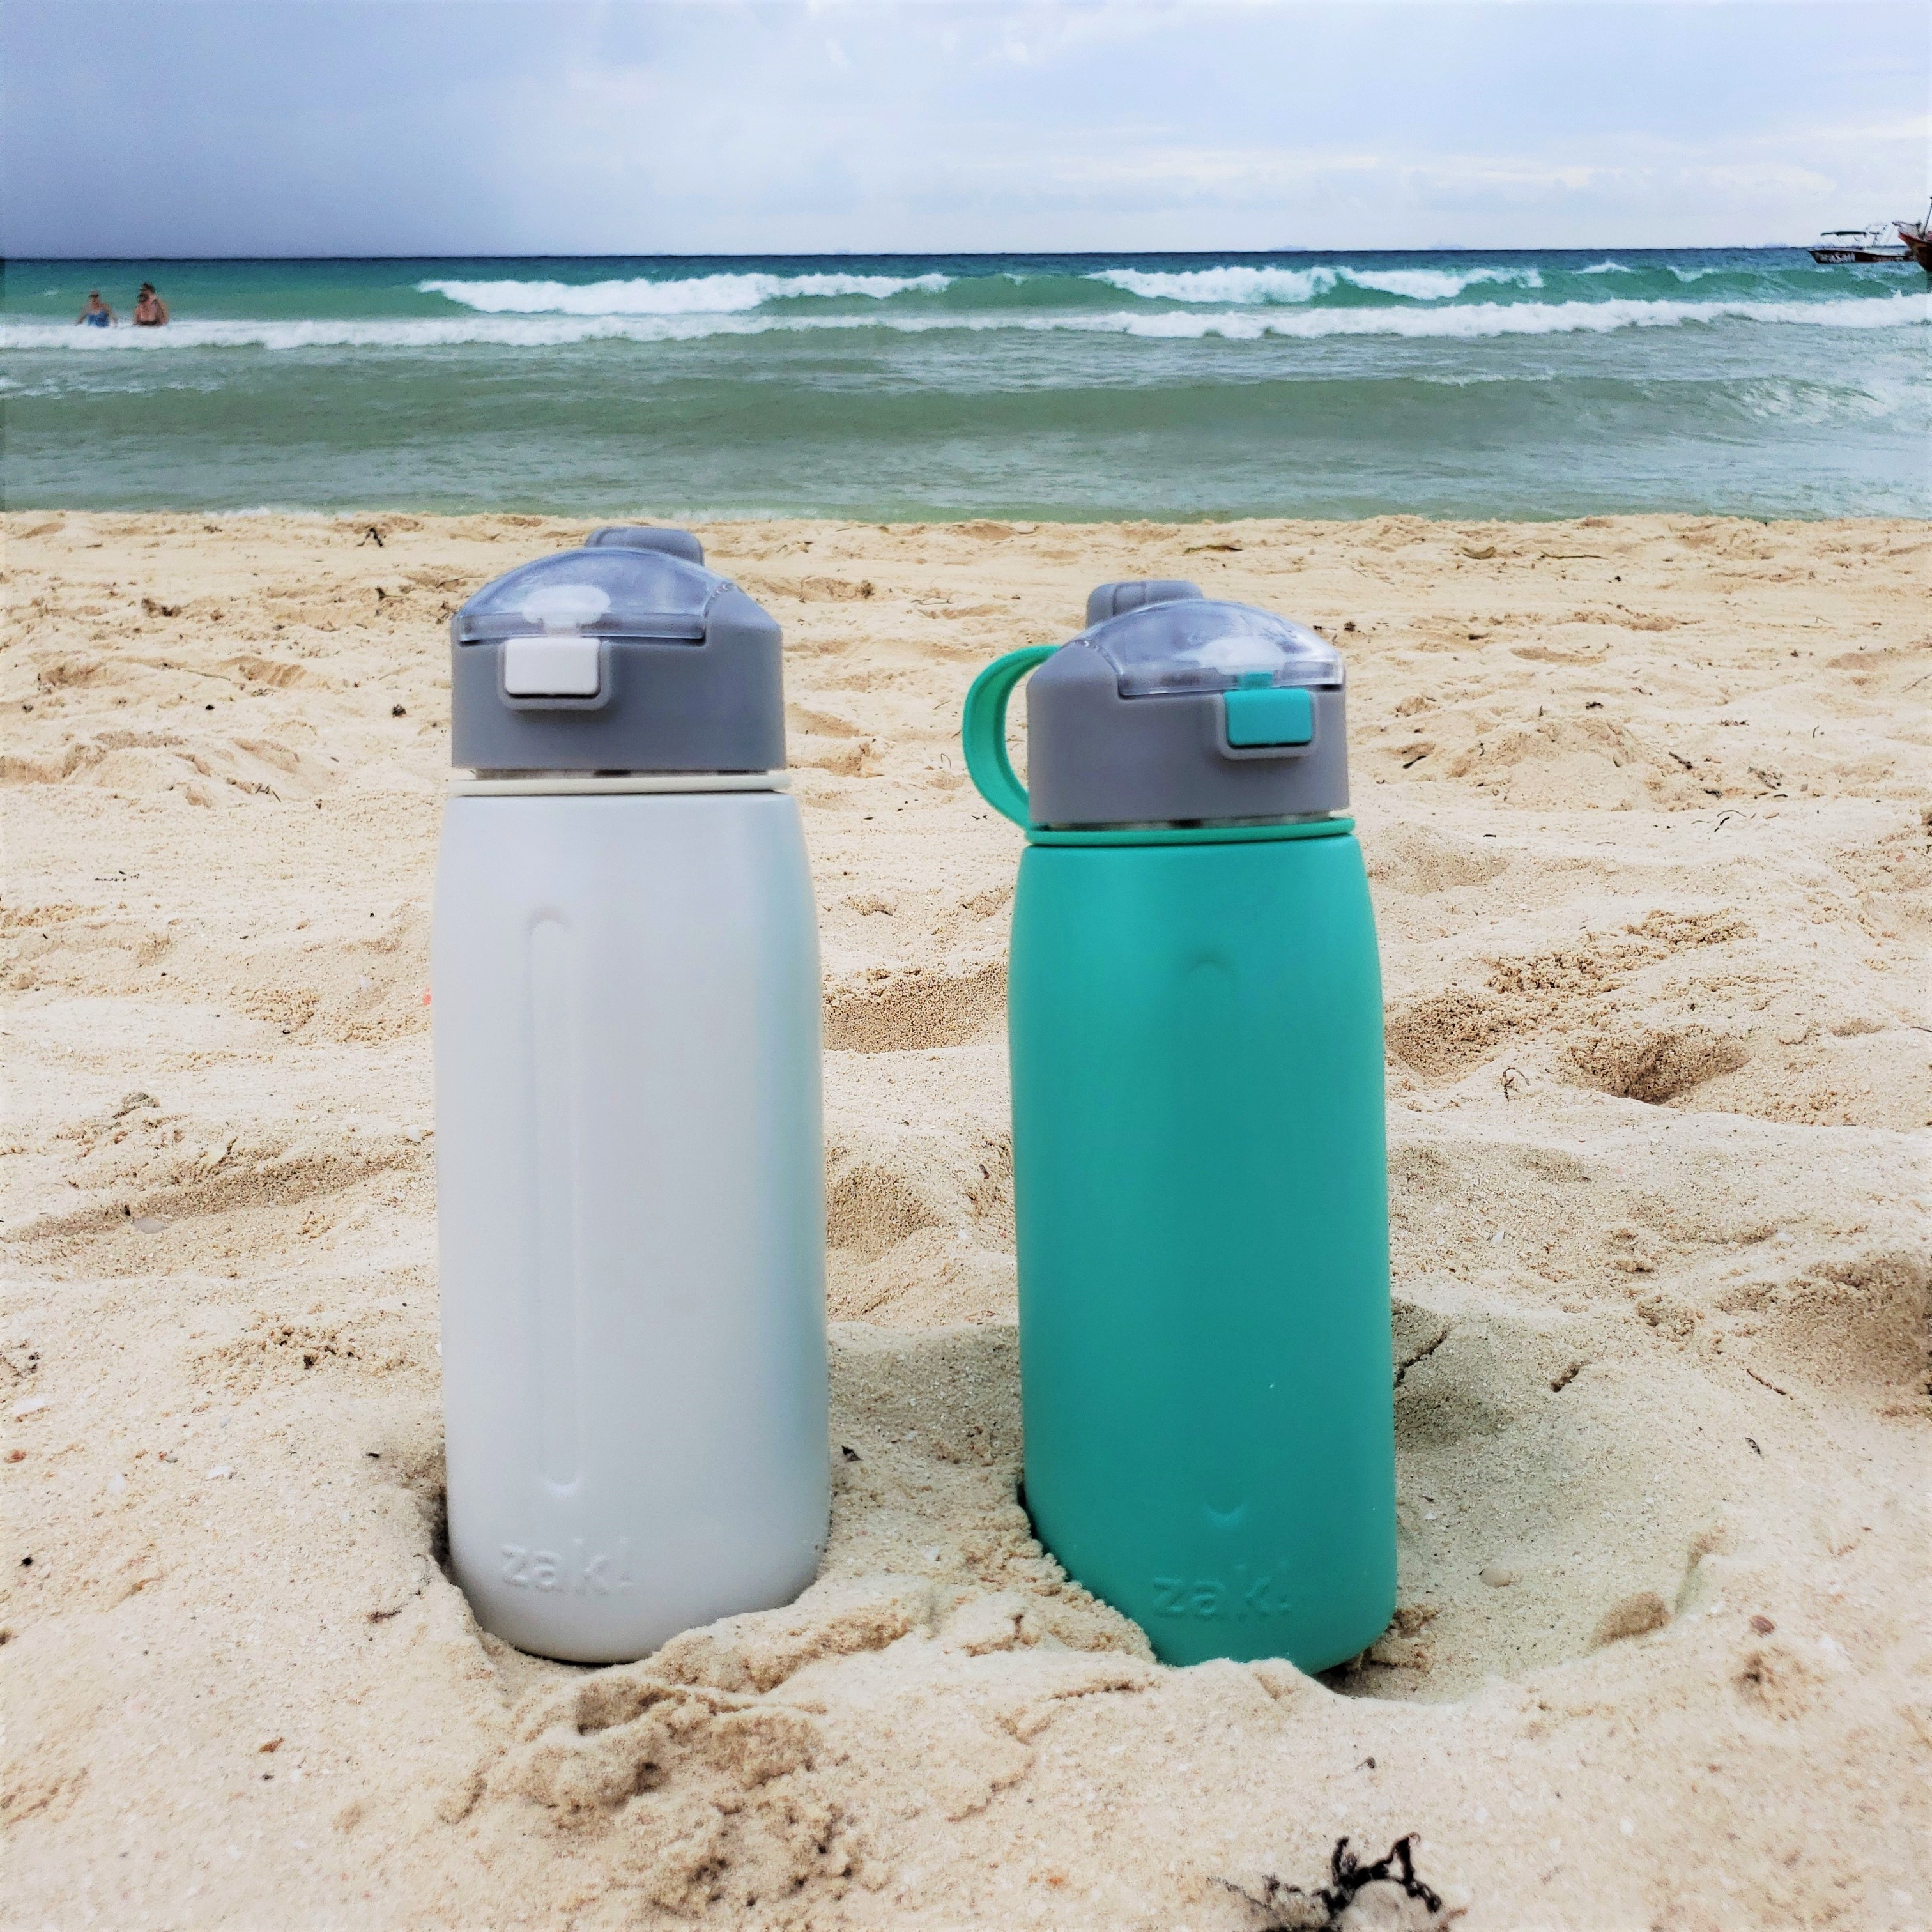 Genesis 24 ounce Vacuum Insulated Stainless Steel Tumbler, Gray slideshow image 10